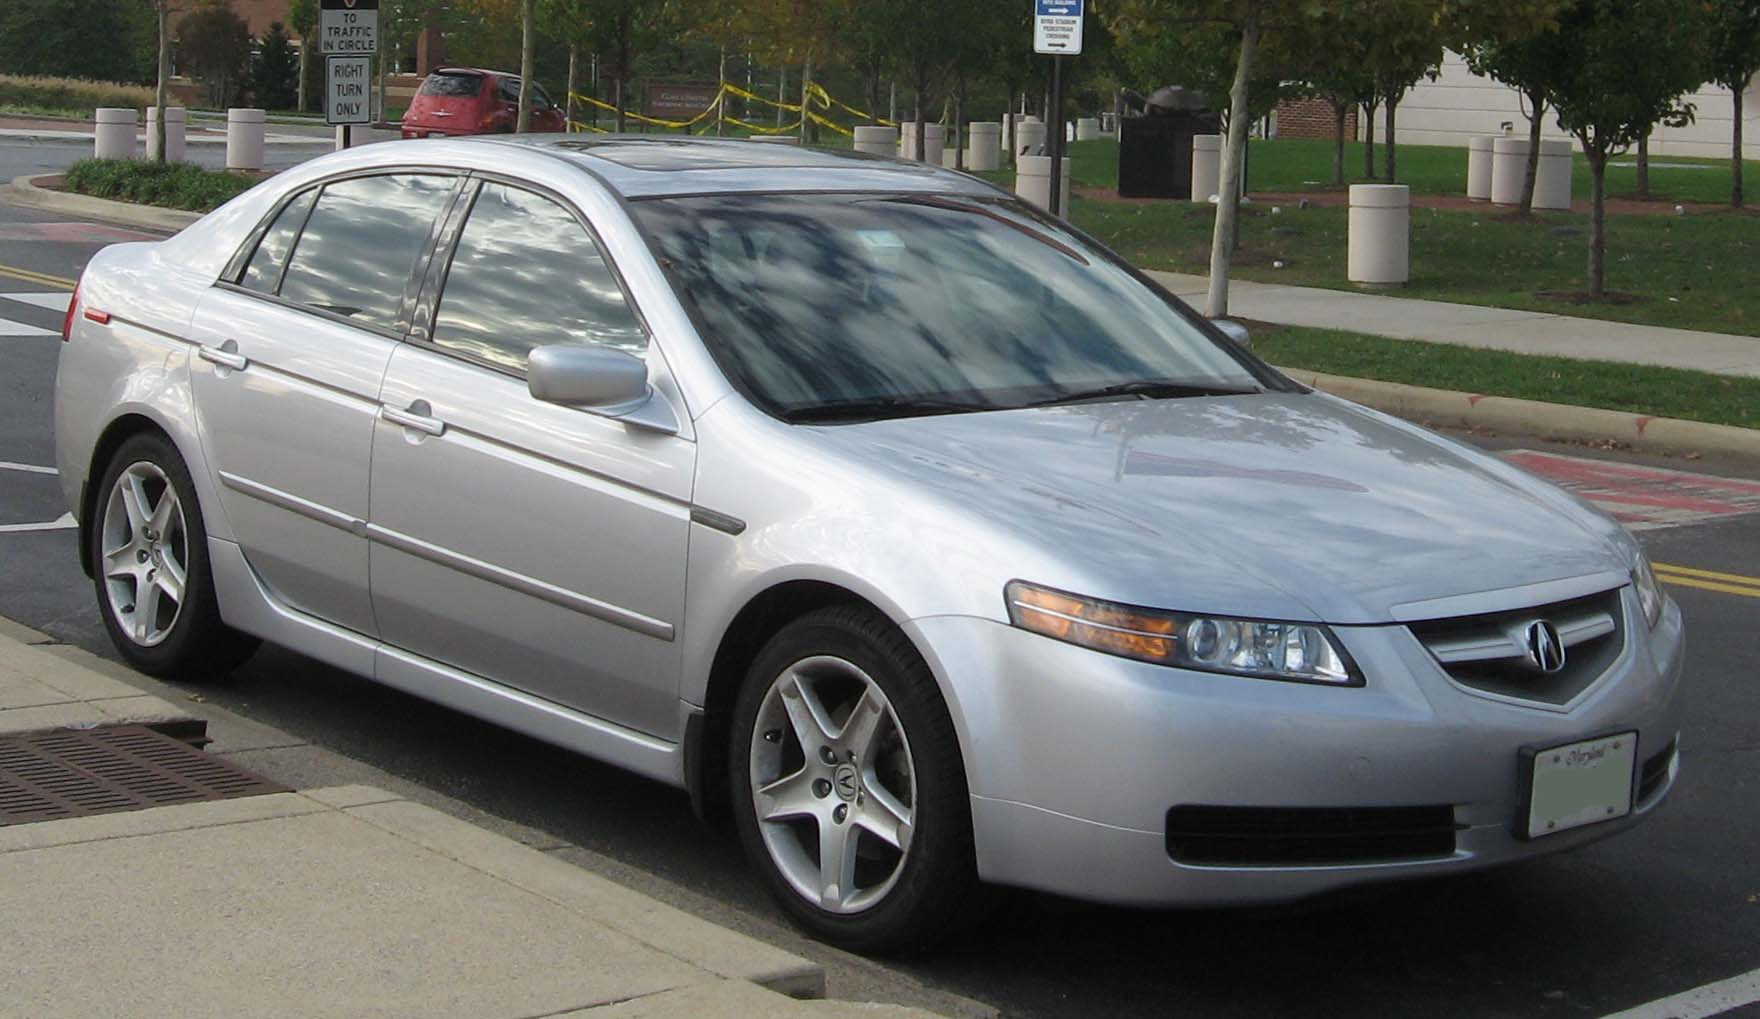 File:04-06 Acura TL.jpg - Wikimedia Commons